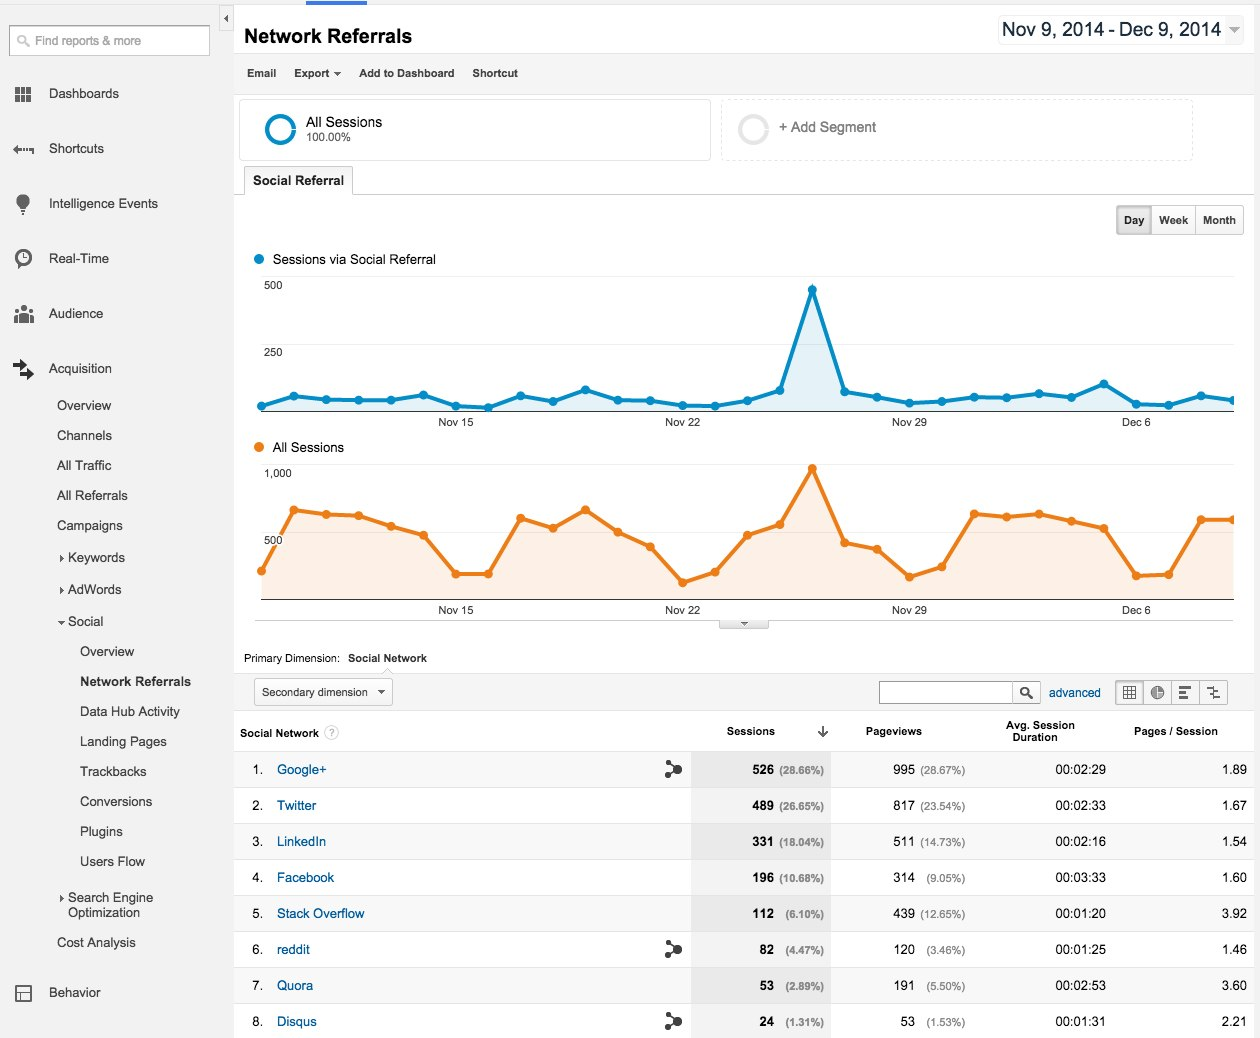 google analytics network referrals report